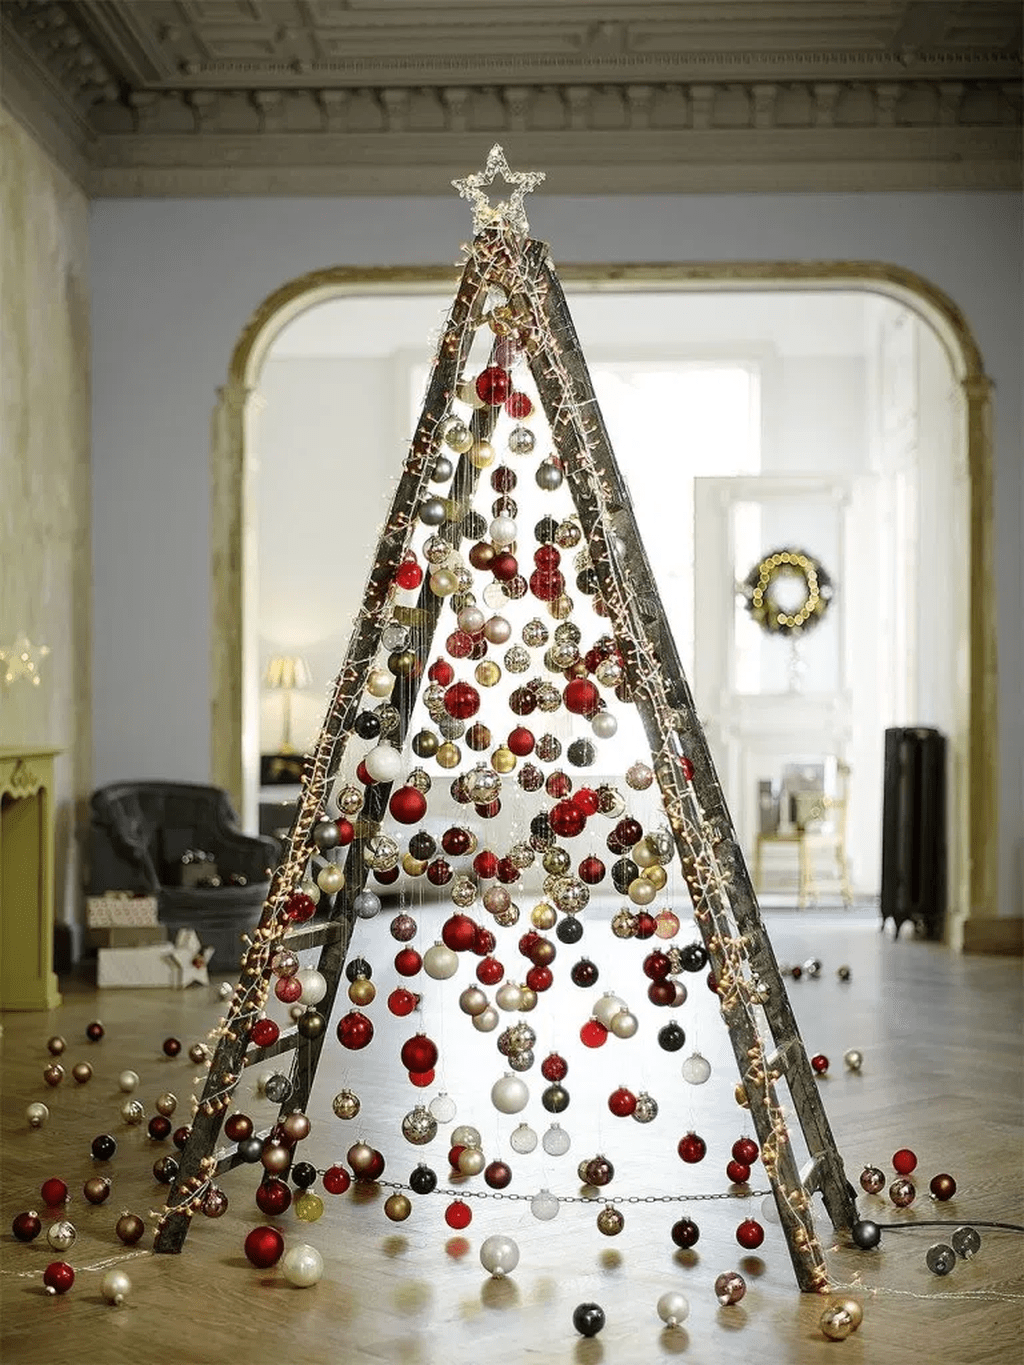 31 Nice Unique Christmas Trees You Never Seen Before Unusual Christmas Trees Alternative Christmas Tree Unique Christmas Trees